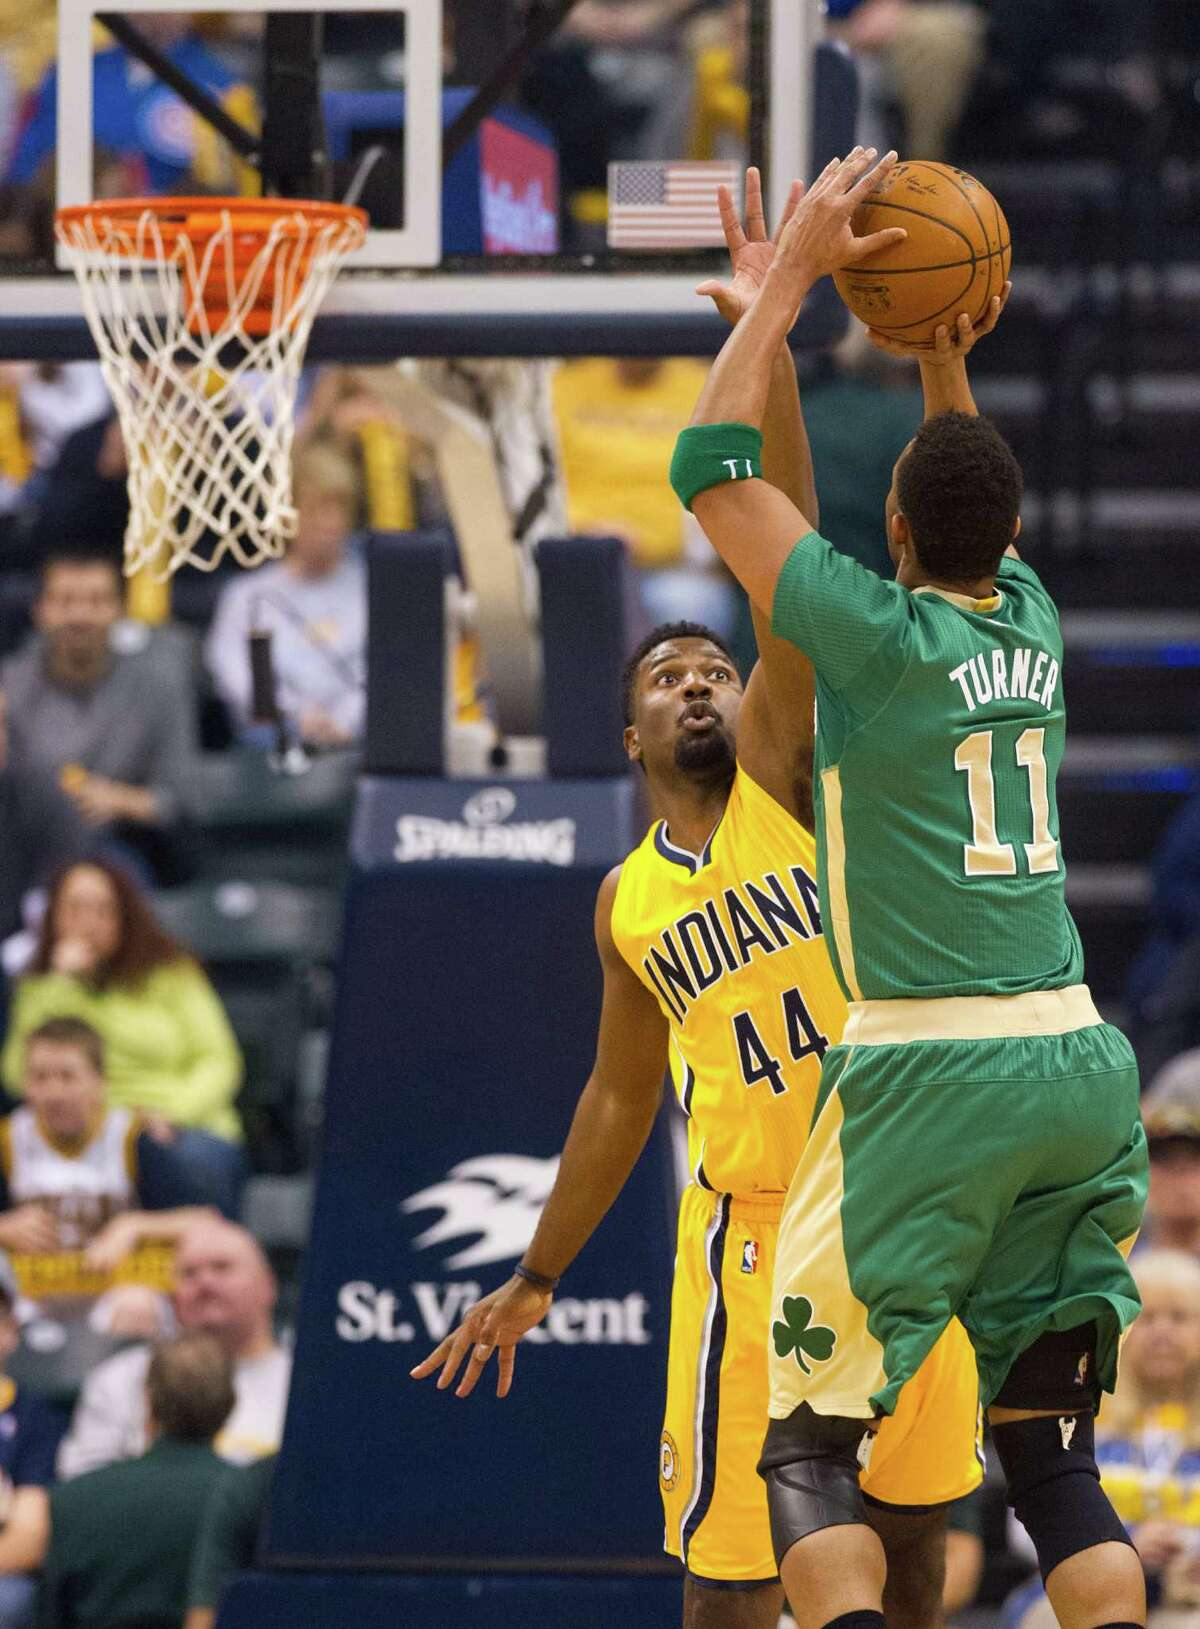 Boston Celtics guard Evan Turner (11) gets a shot off over the defense of Indiana Pacers forward Solomon Hill (44) during the first half of an NBA basketball game, Saturday, March 14, 2015, in Indianapolis. (AP Photo/Doug McSchooler) ORG XMIT: NAF102